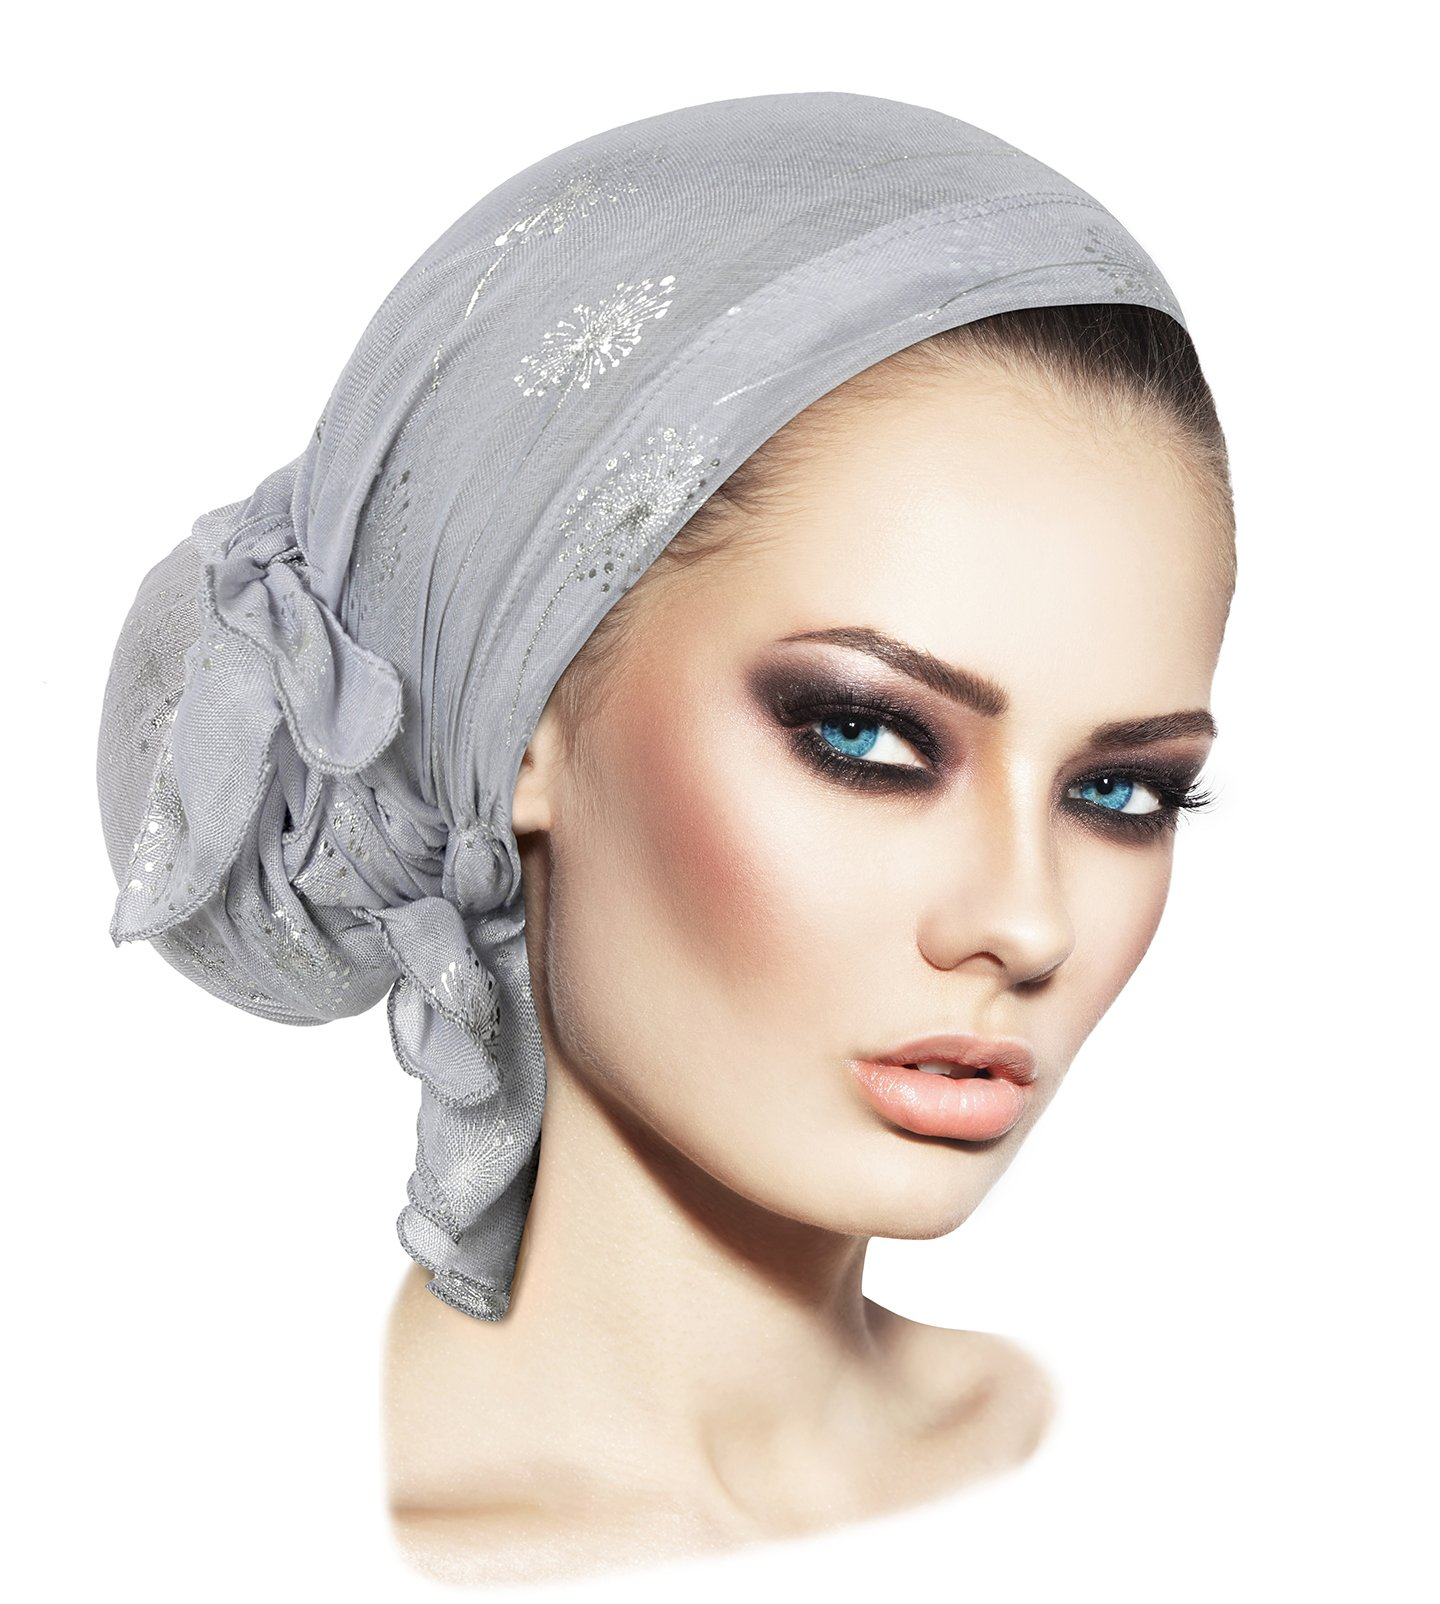 ShariRose Soft Lightweight pre-Tied Head-Scarf Tichel Weightless Collection! Over 50 Colors! (Gray Silver Dandelion Puff Long)